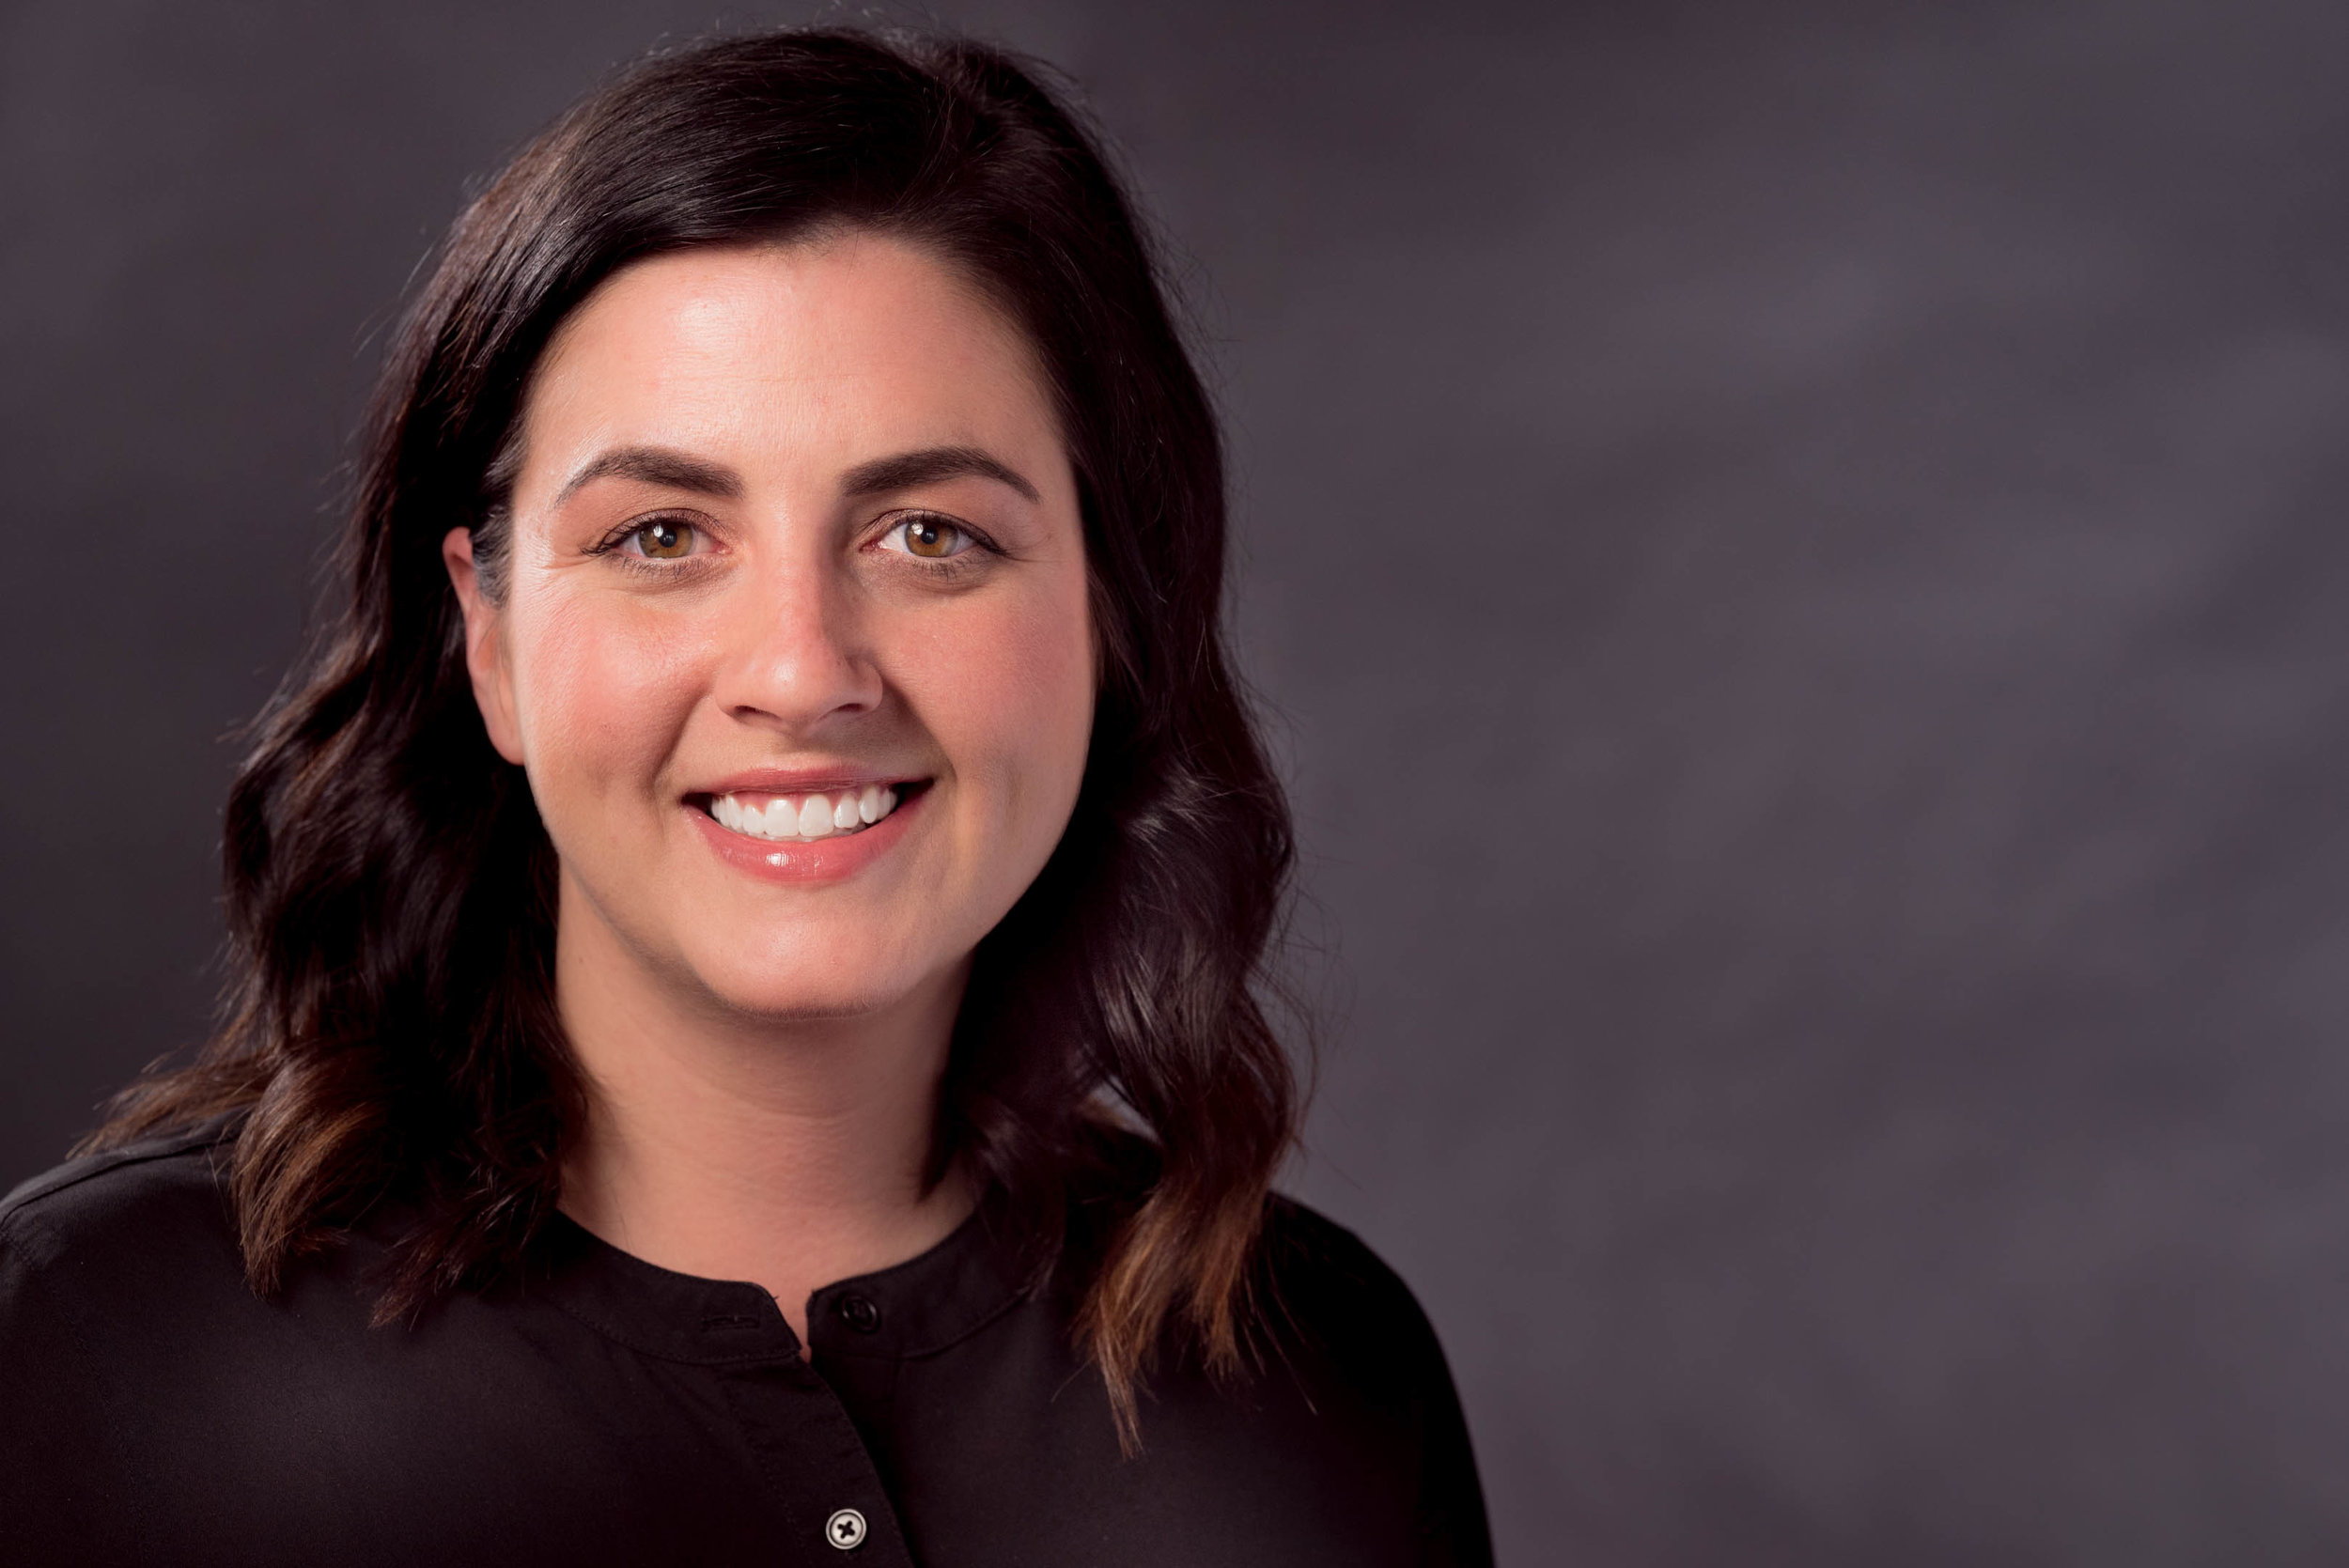 Nikki Hessel - Director of Pulse Young Professionals Network (previously)